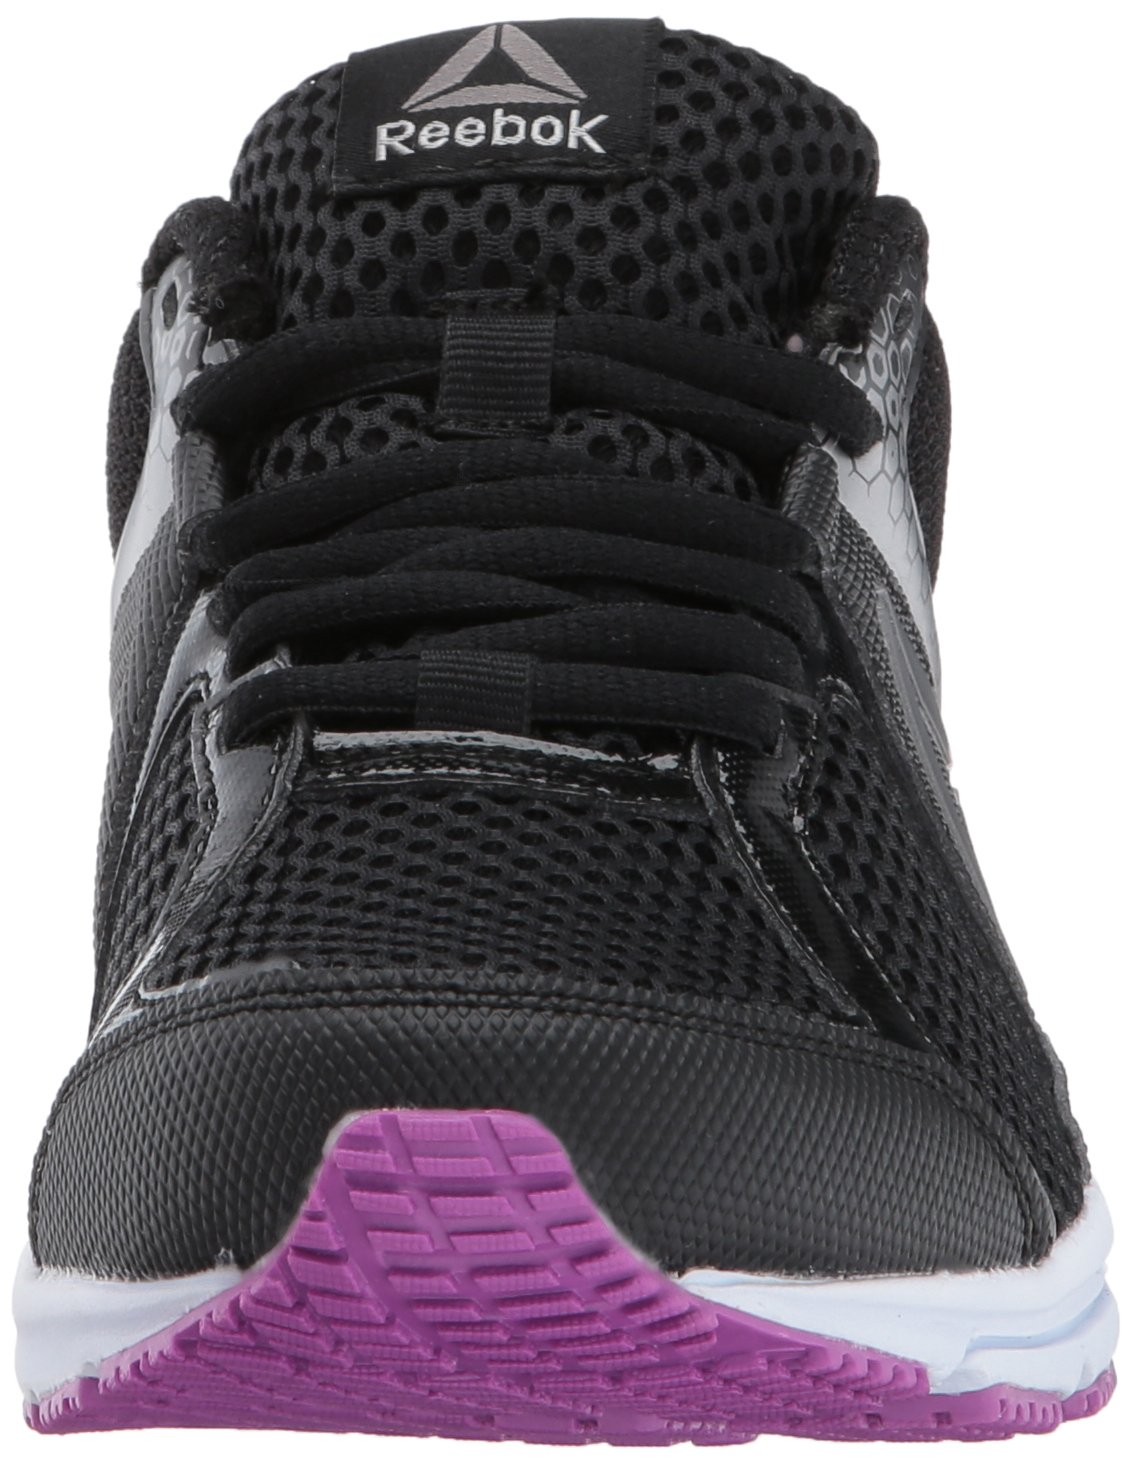 Reebok Women's Shoe Runner 2.0 MT Track Shoe Women's B01NBKDLE3 7 B(M) US|Black/Vicious Violet/Pewter b5821e